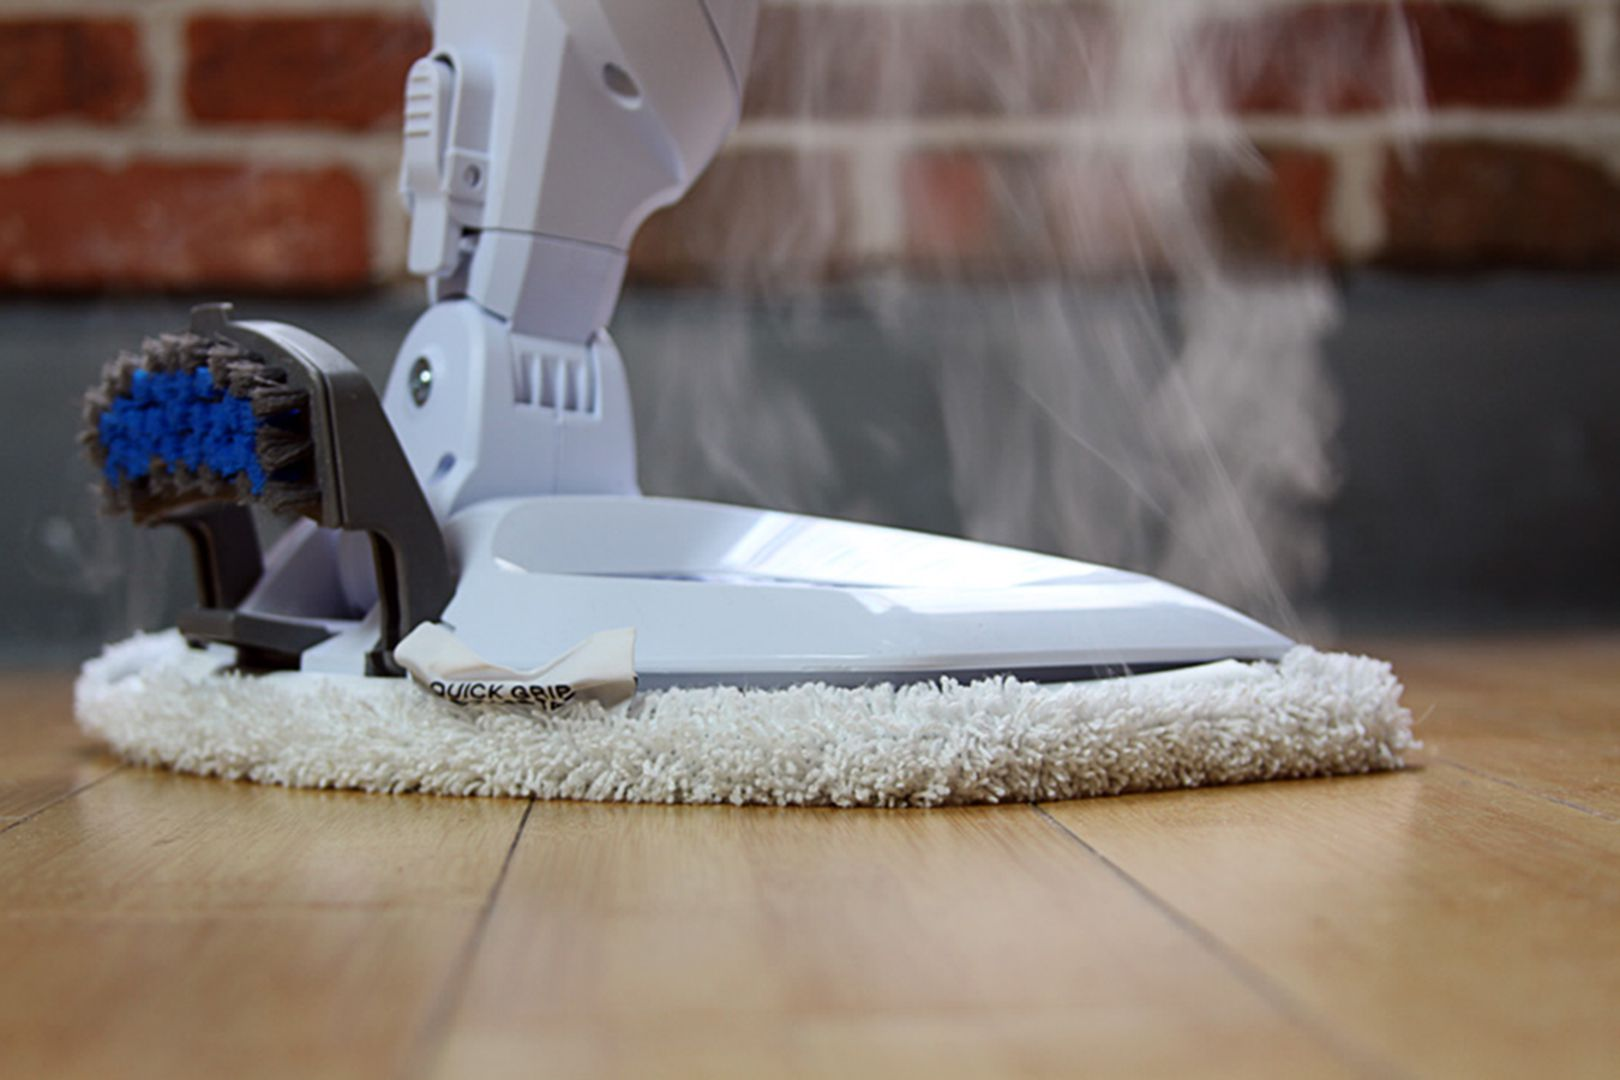 What Does a Steam Mop Do?